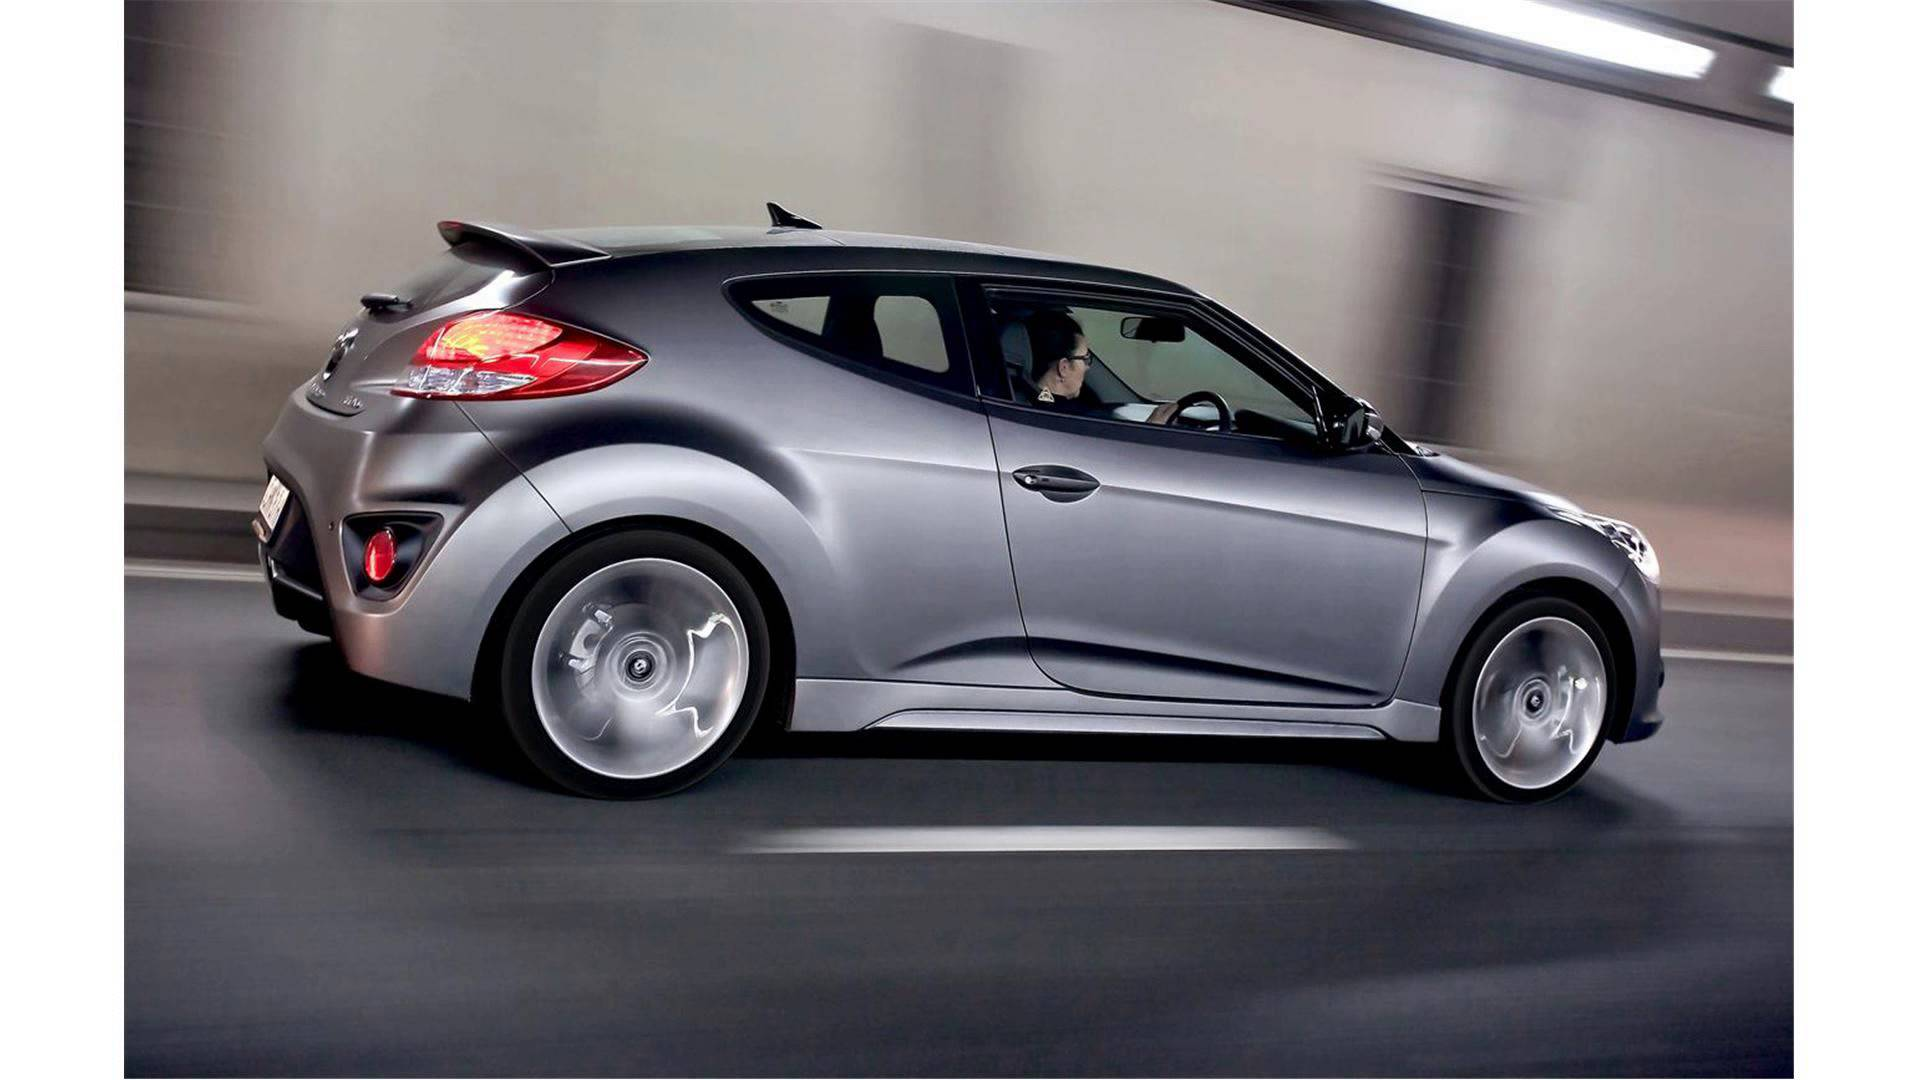 2015 hyundai veloster information and photos zombiedrive. Black Bedroom Furniture Sets. Home Design Ideas